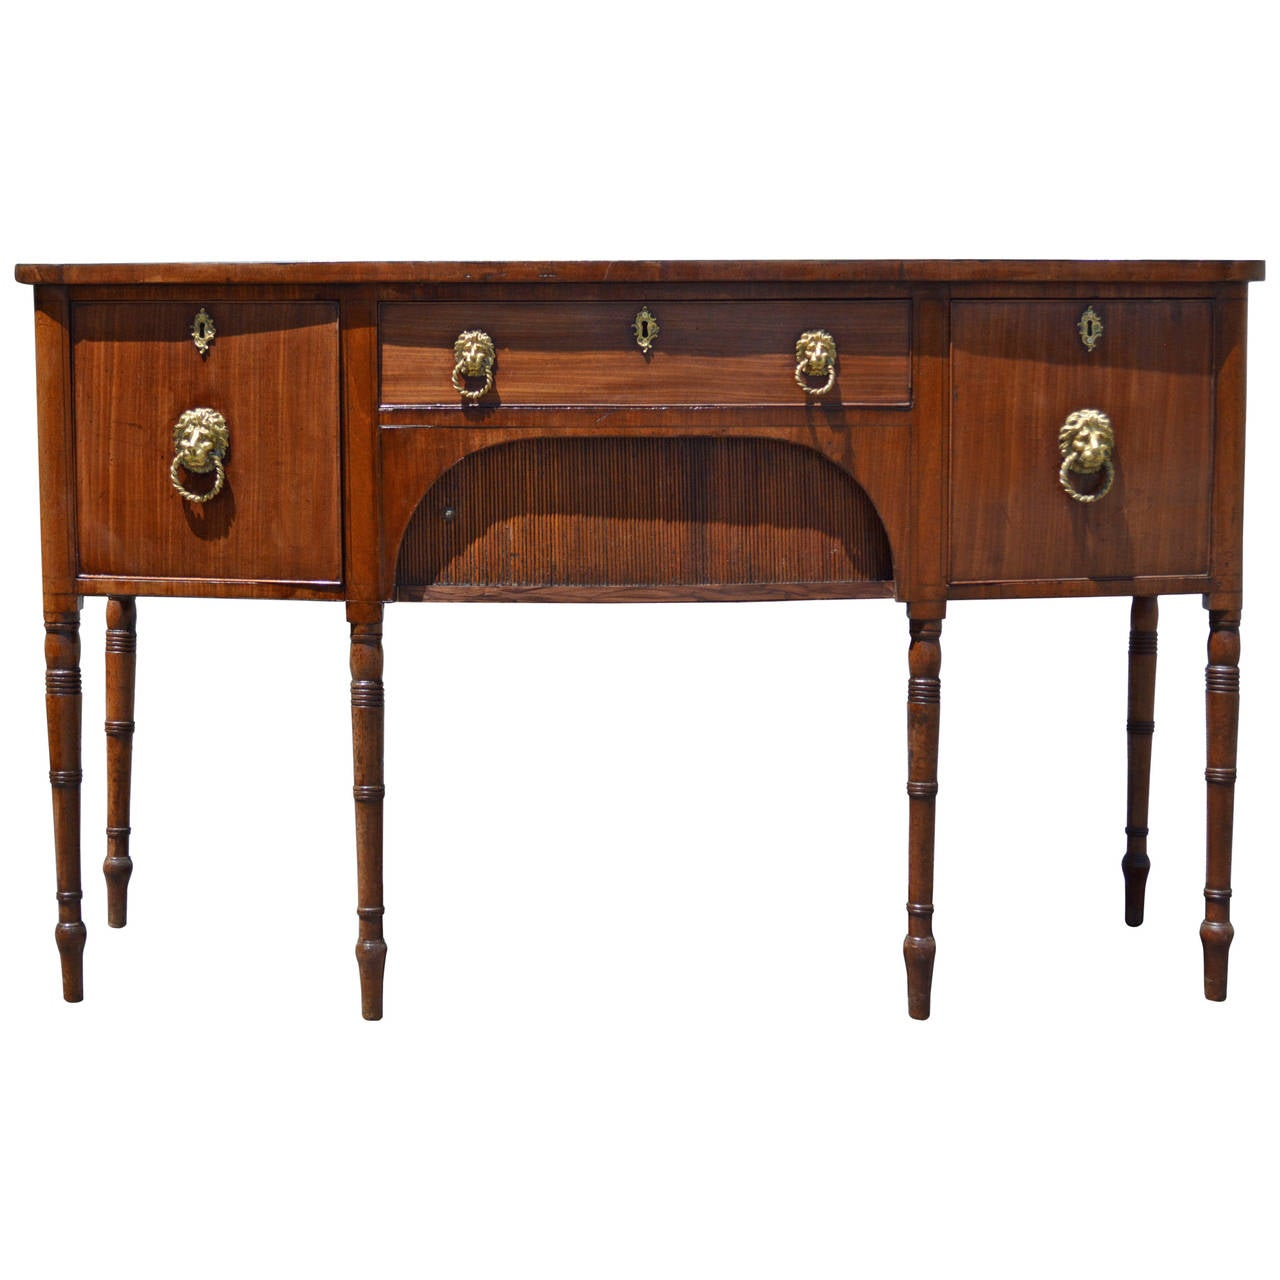 19th Century Regency English Mahogany Sideboard 1 - 19th Century Regency English Mahogany Sideboard For Sale At 1stdibs